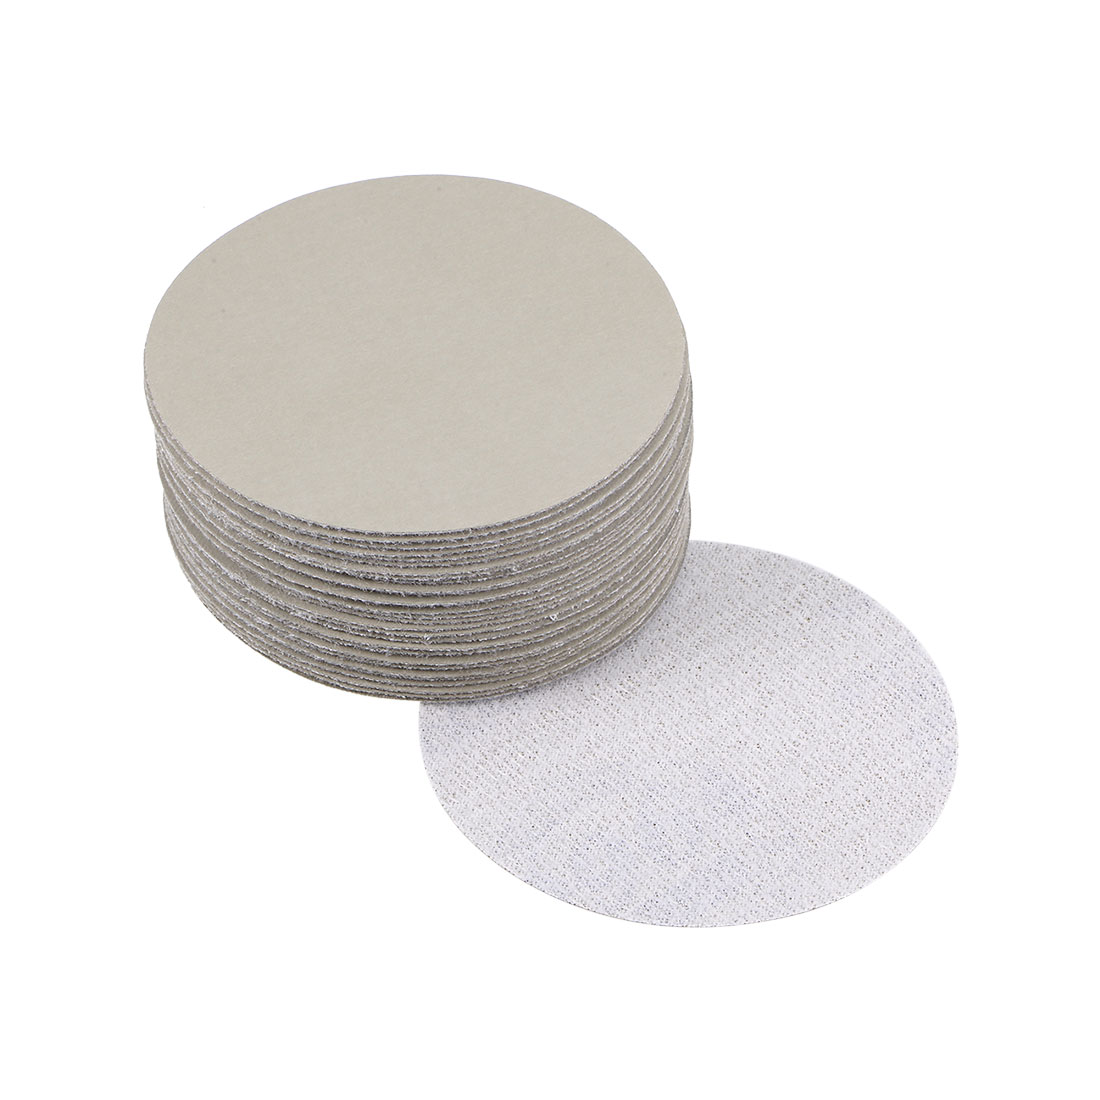 3 inch Wet Dry Discs 5000 Grit Hook and Loop Sanding Disc Silicon Carbide 30pcs